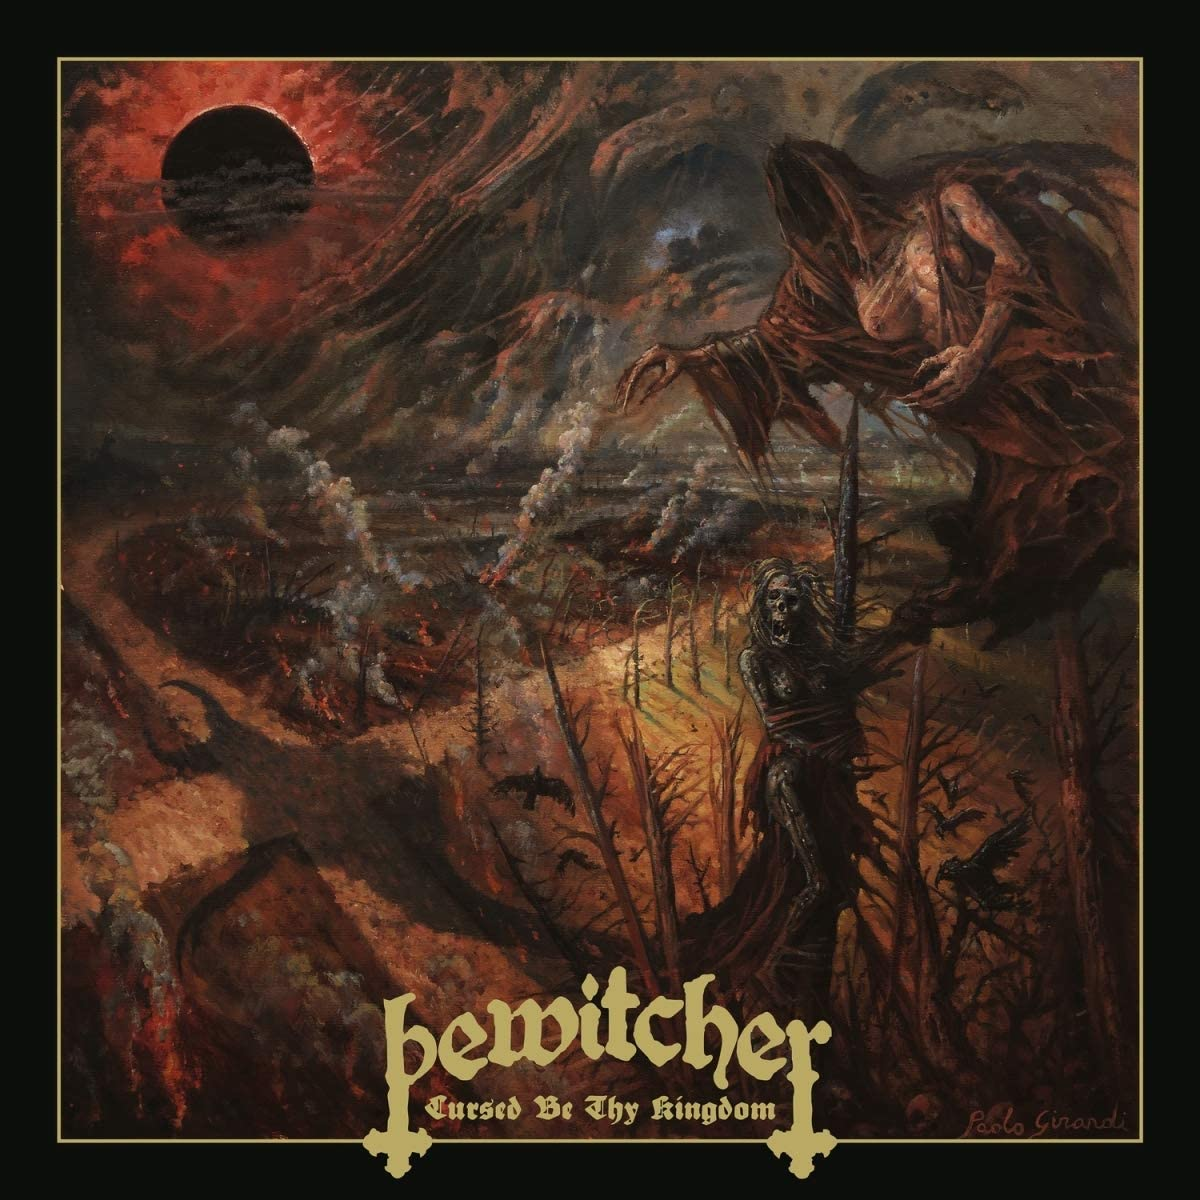 BEWITCHER - CURSED BE THY KINGDOM (CD)